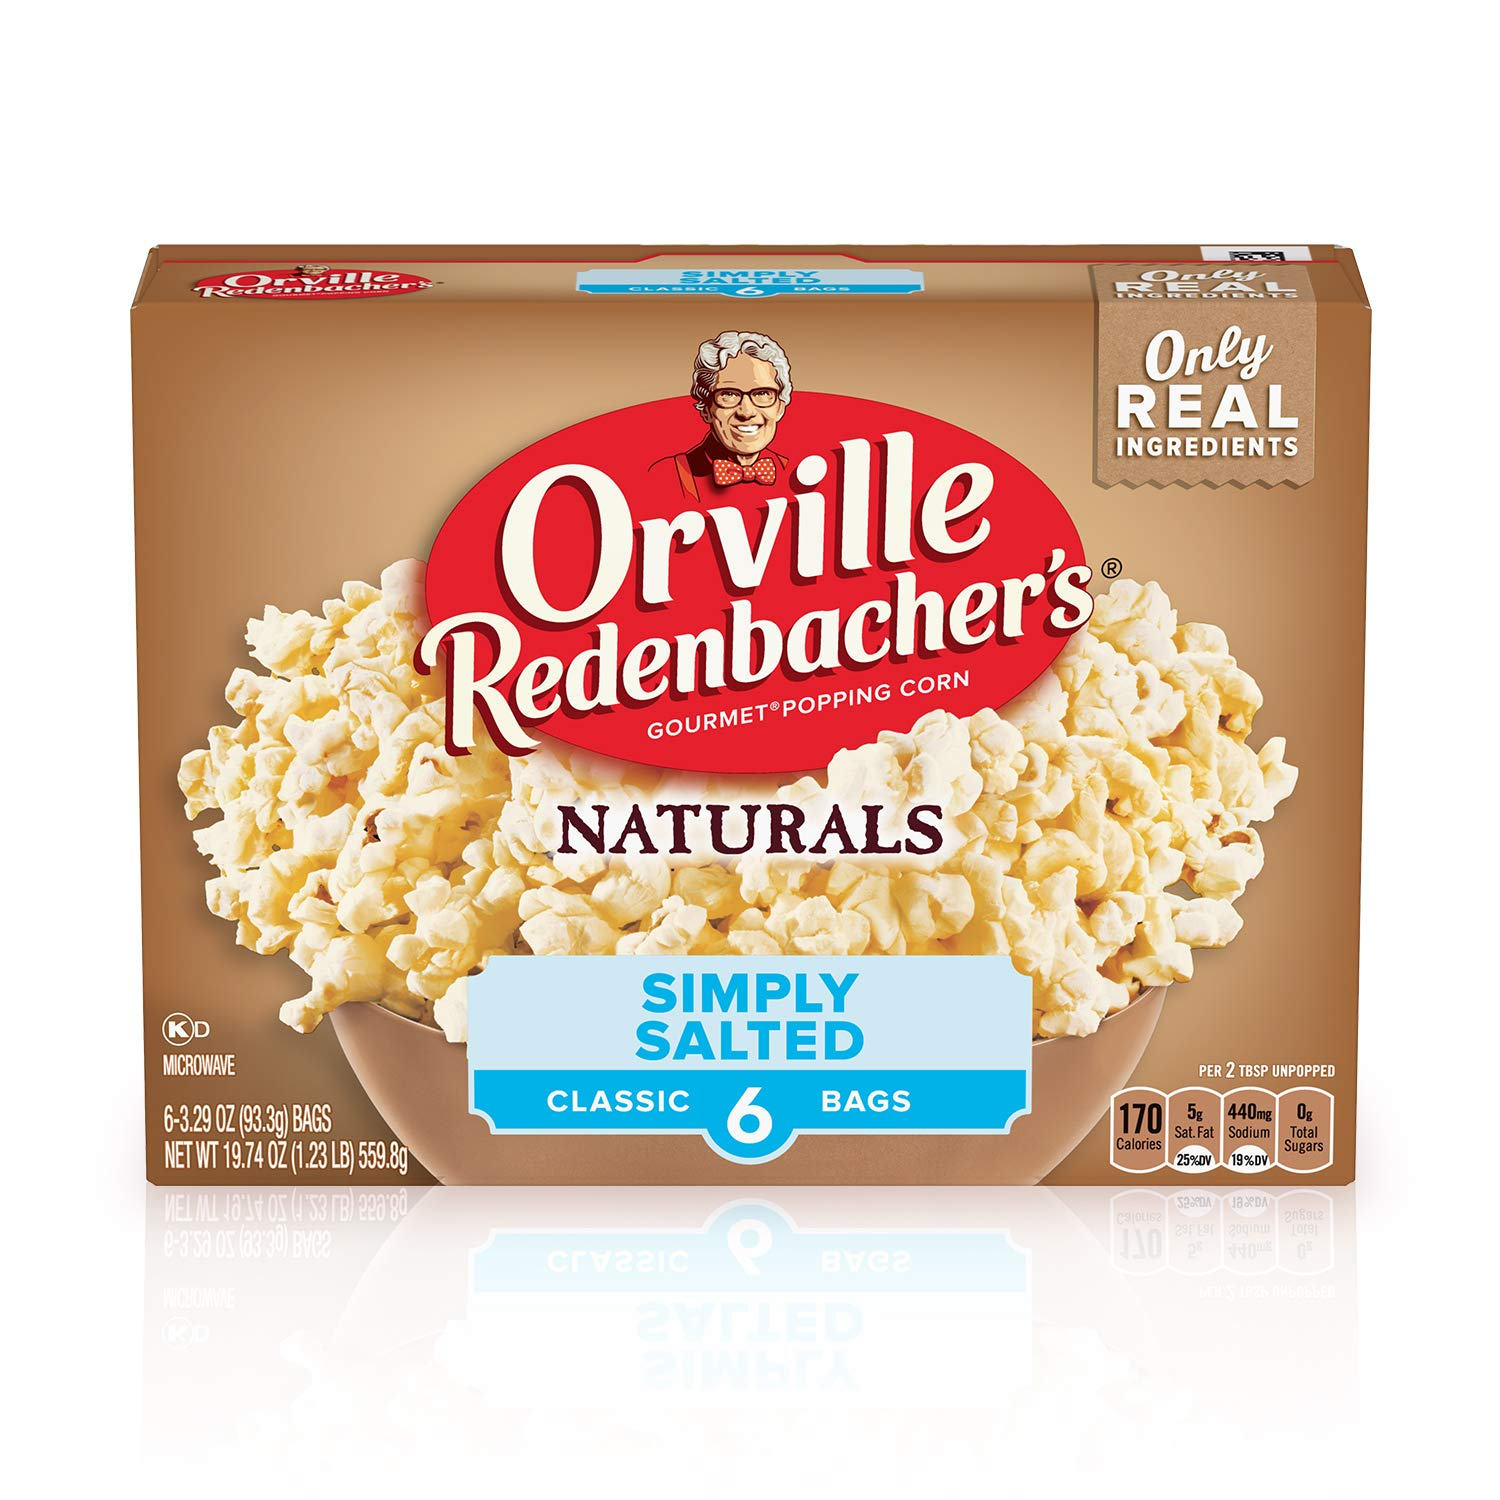 Orville Redenbachers Naturals Popcorn Simply Salted 6-Pack